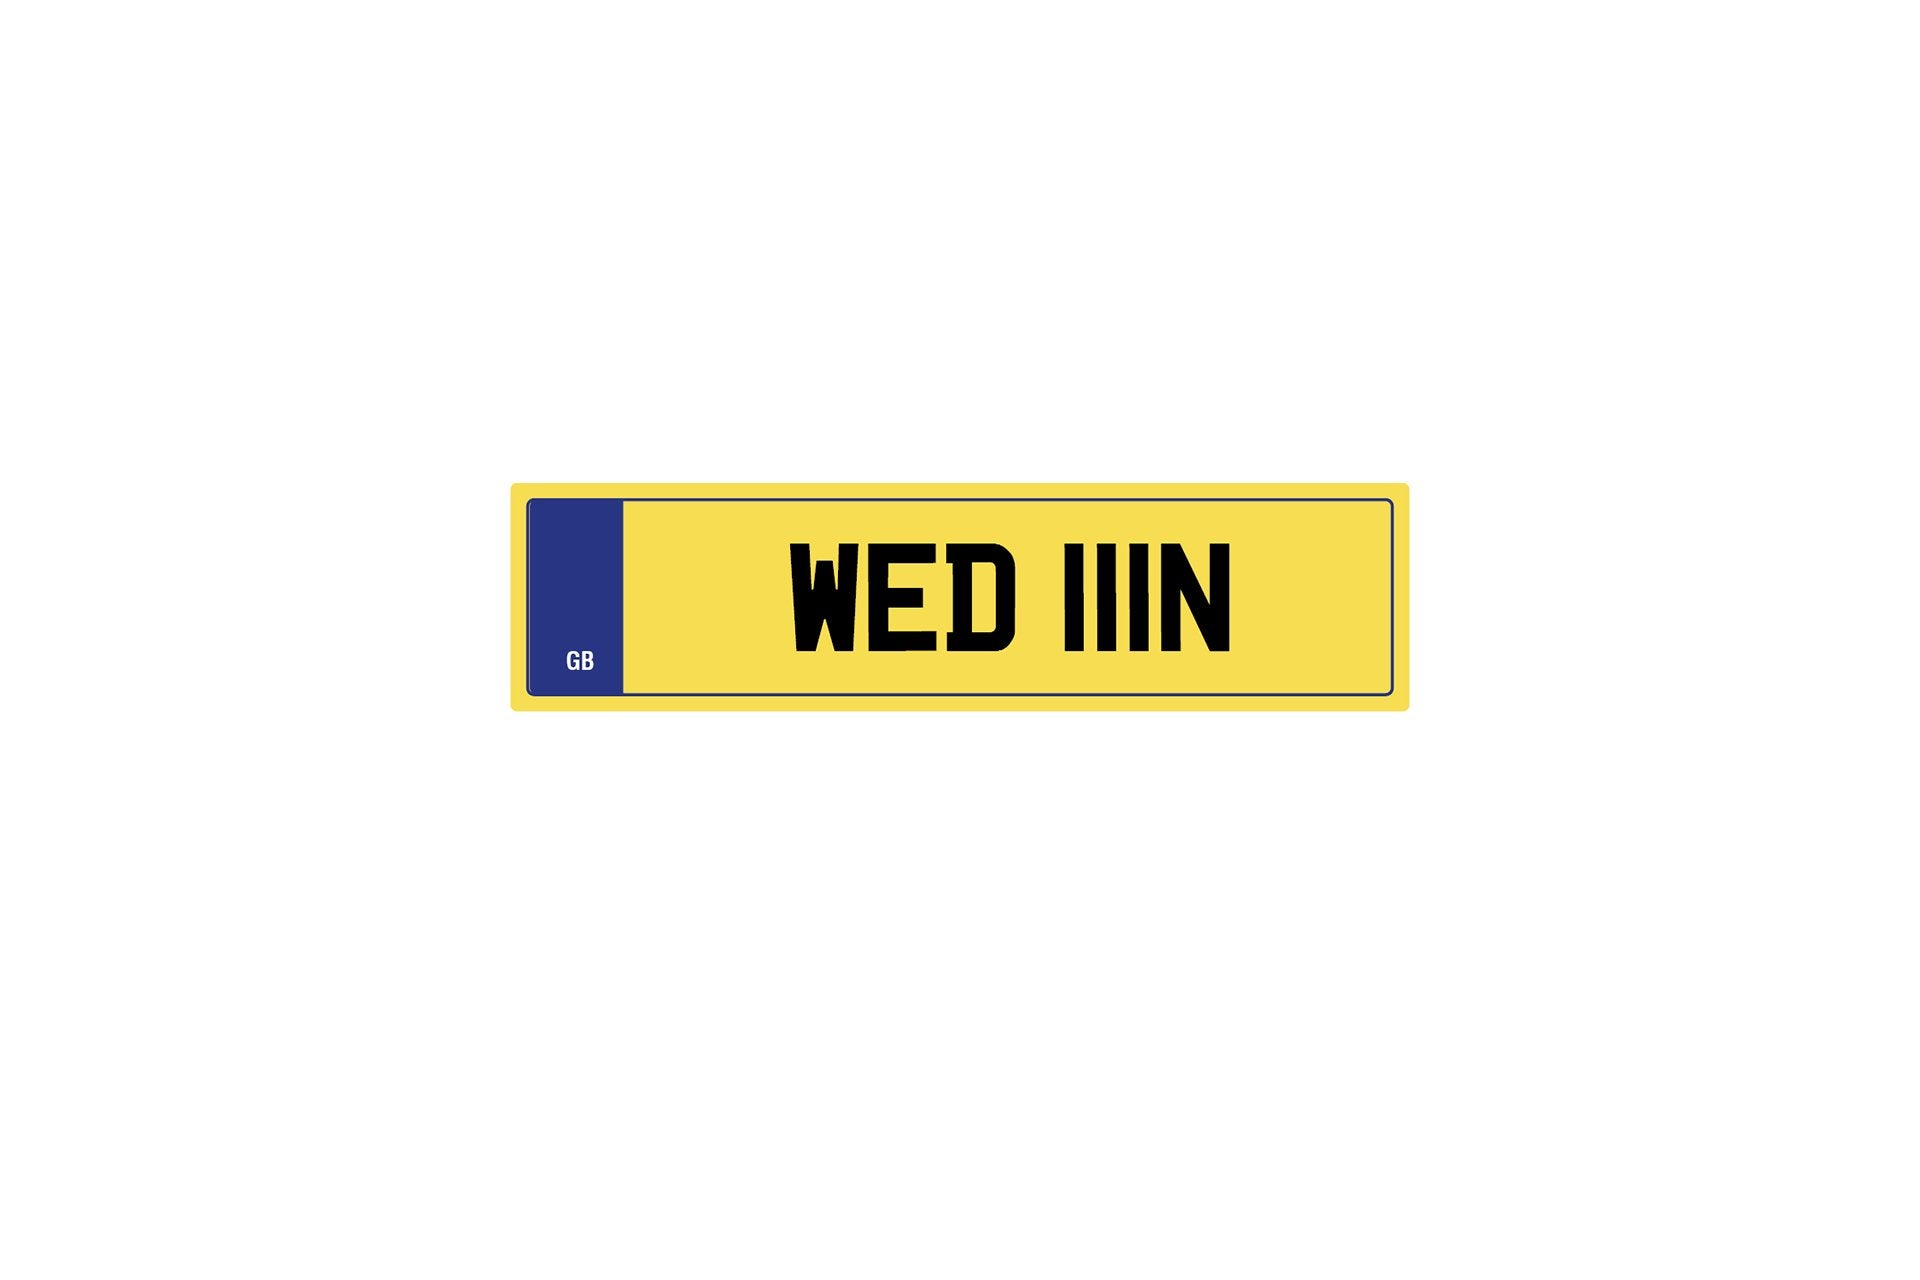 Private Plate Wed Iiin by Kahn - Image 219